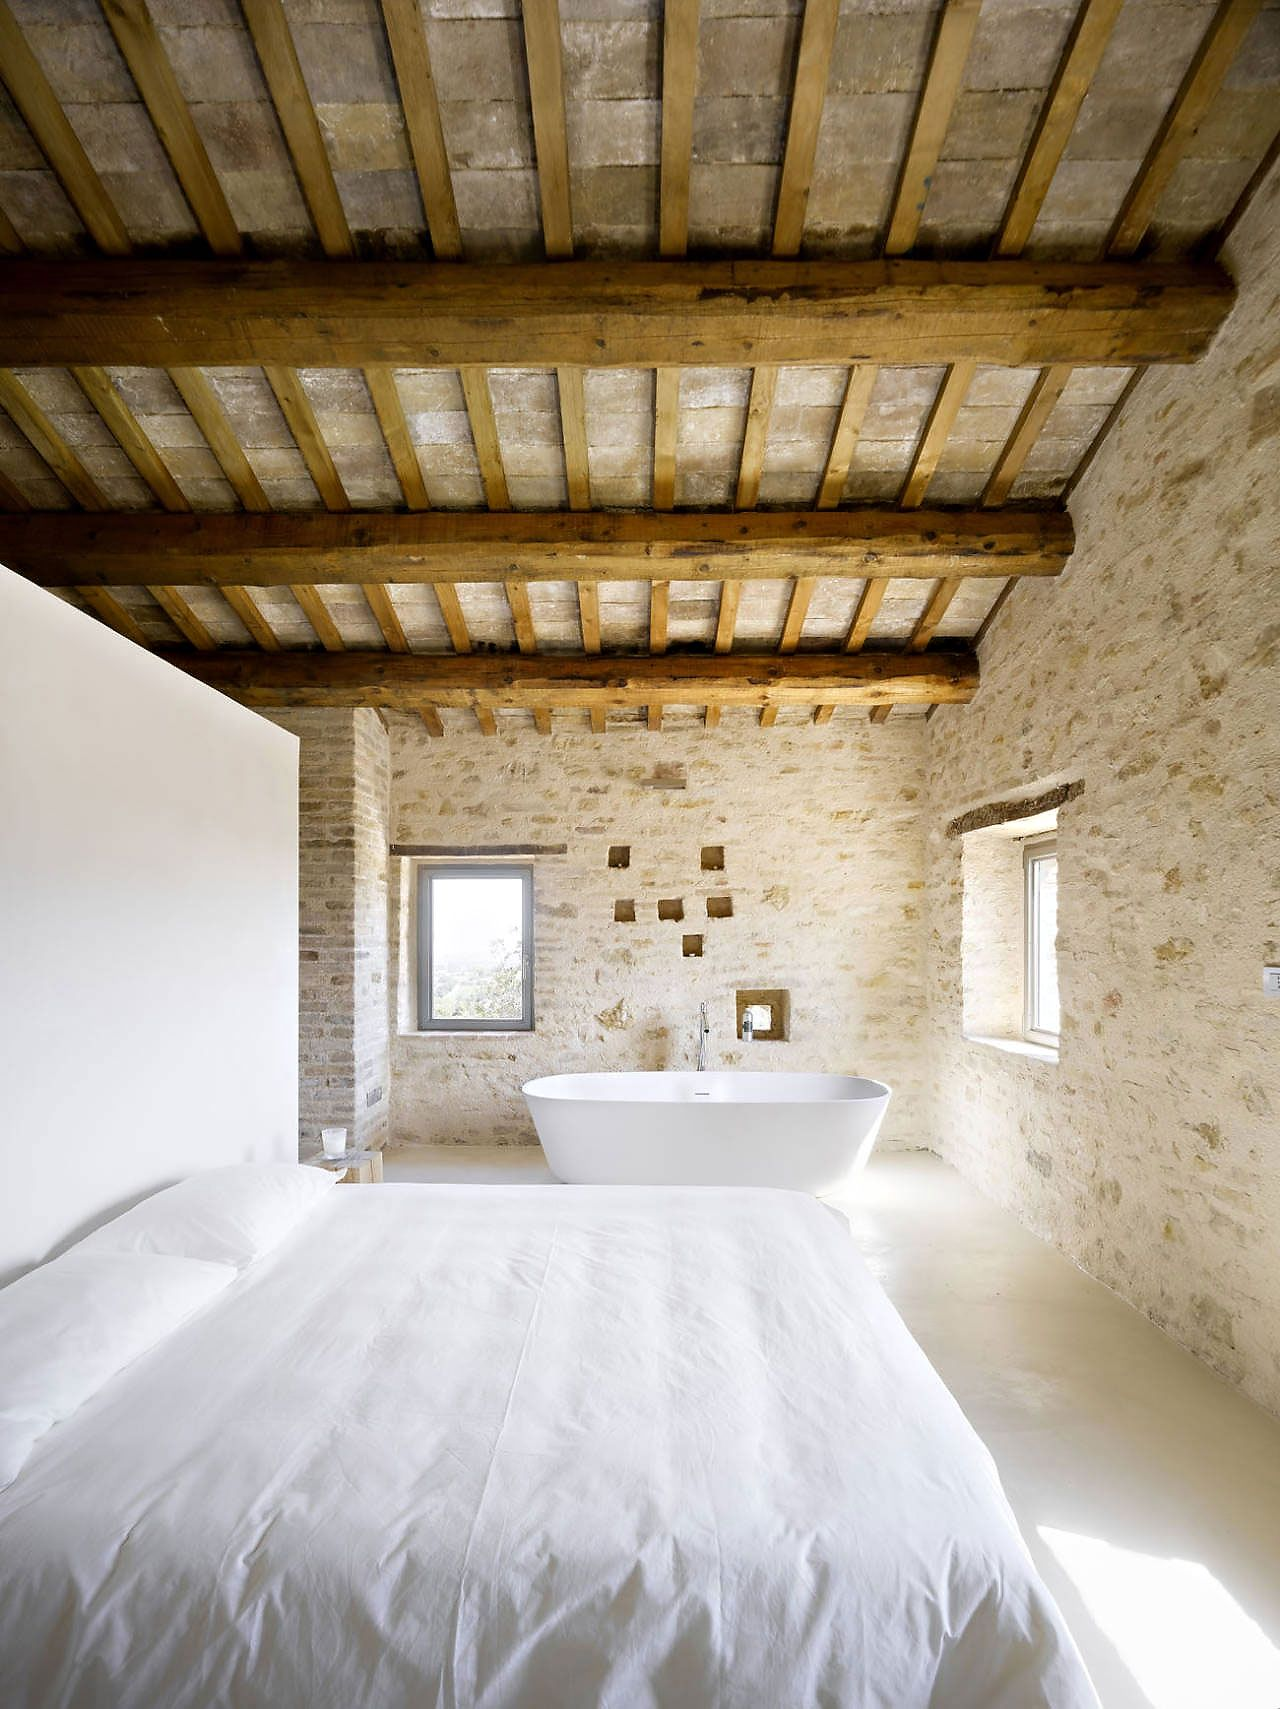 17 Best images about Bedrooms with Bathtubs on Pinterest   House  Bed  amp  bath and Beach bungalows. 17 Best images about Bedrooms with Bathtubs on Pinterest   House